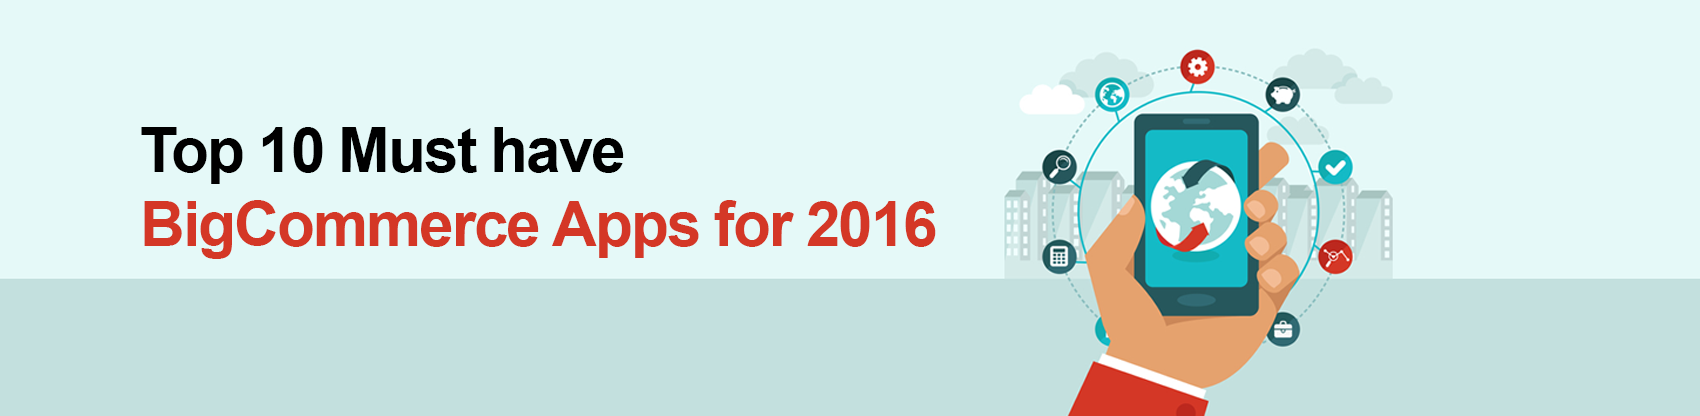 Top 10 Must Have BigCommerce Apps for 2016